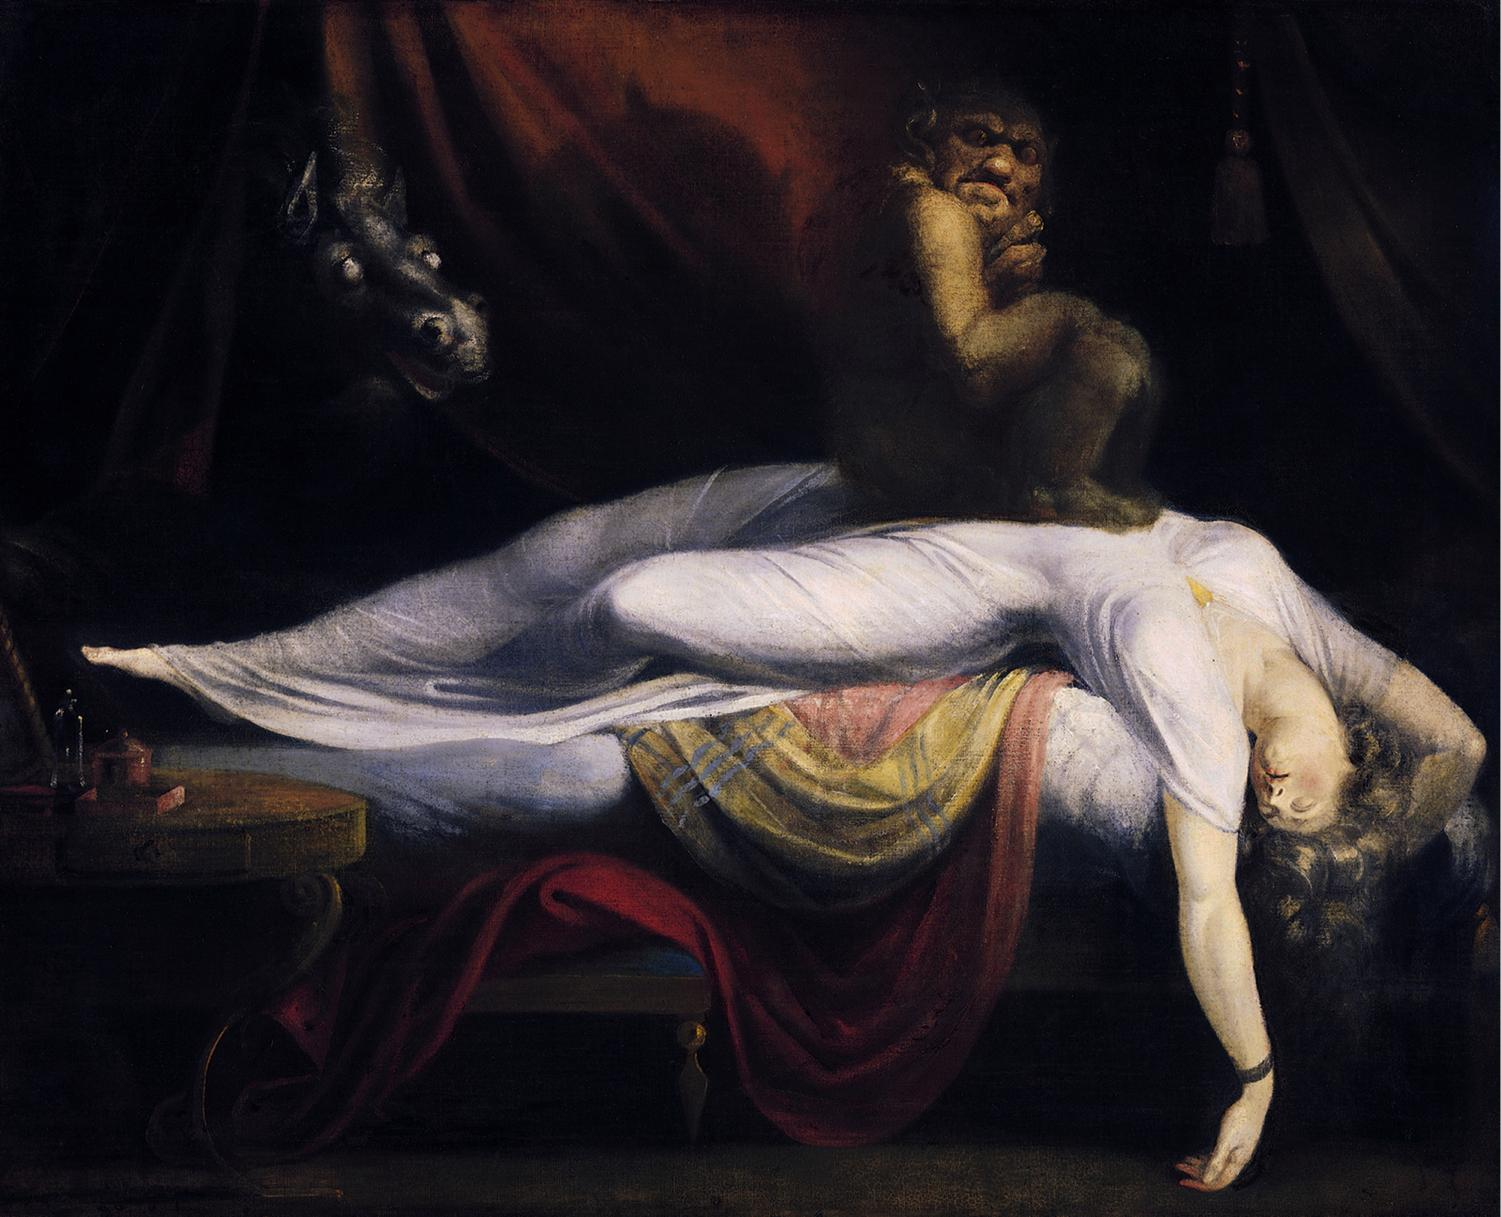 A painting from the artist John Henry Fuseli depicting a nightmare.